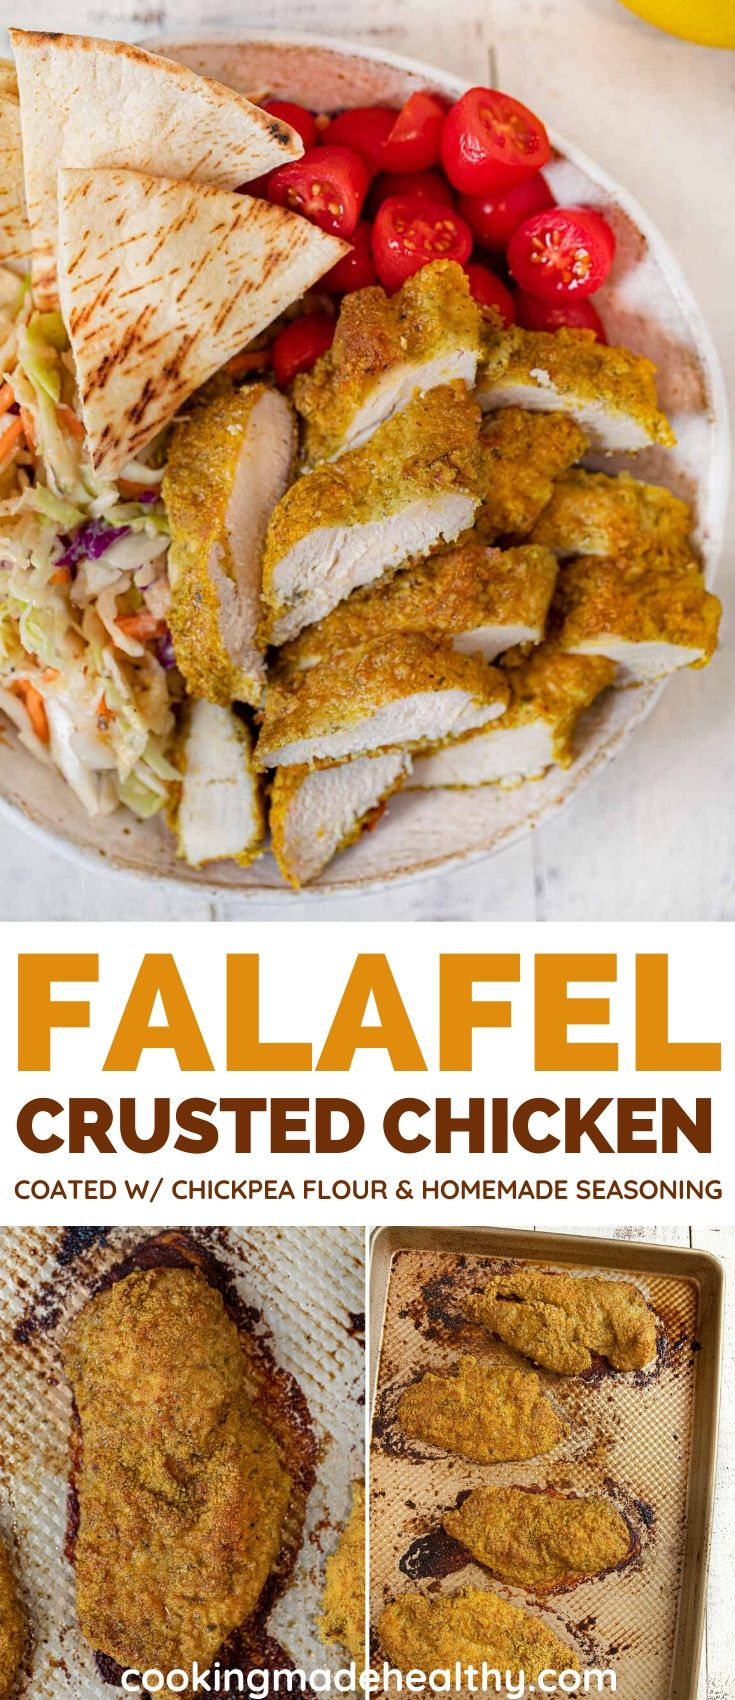 Falafel Crusted Chicken collage